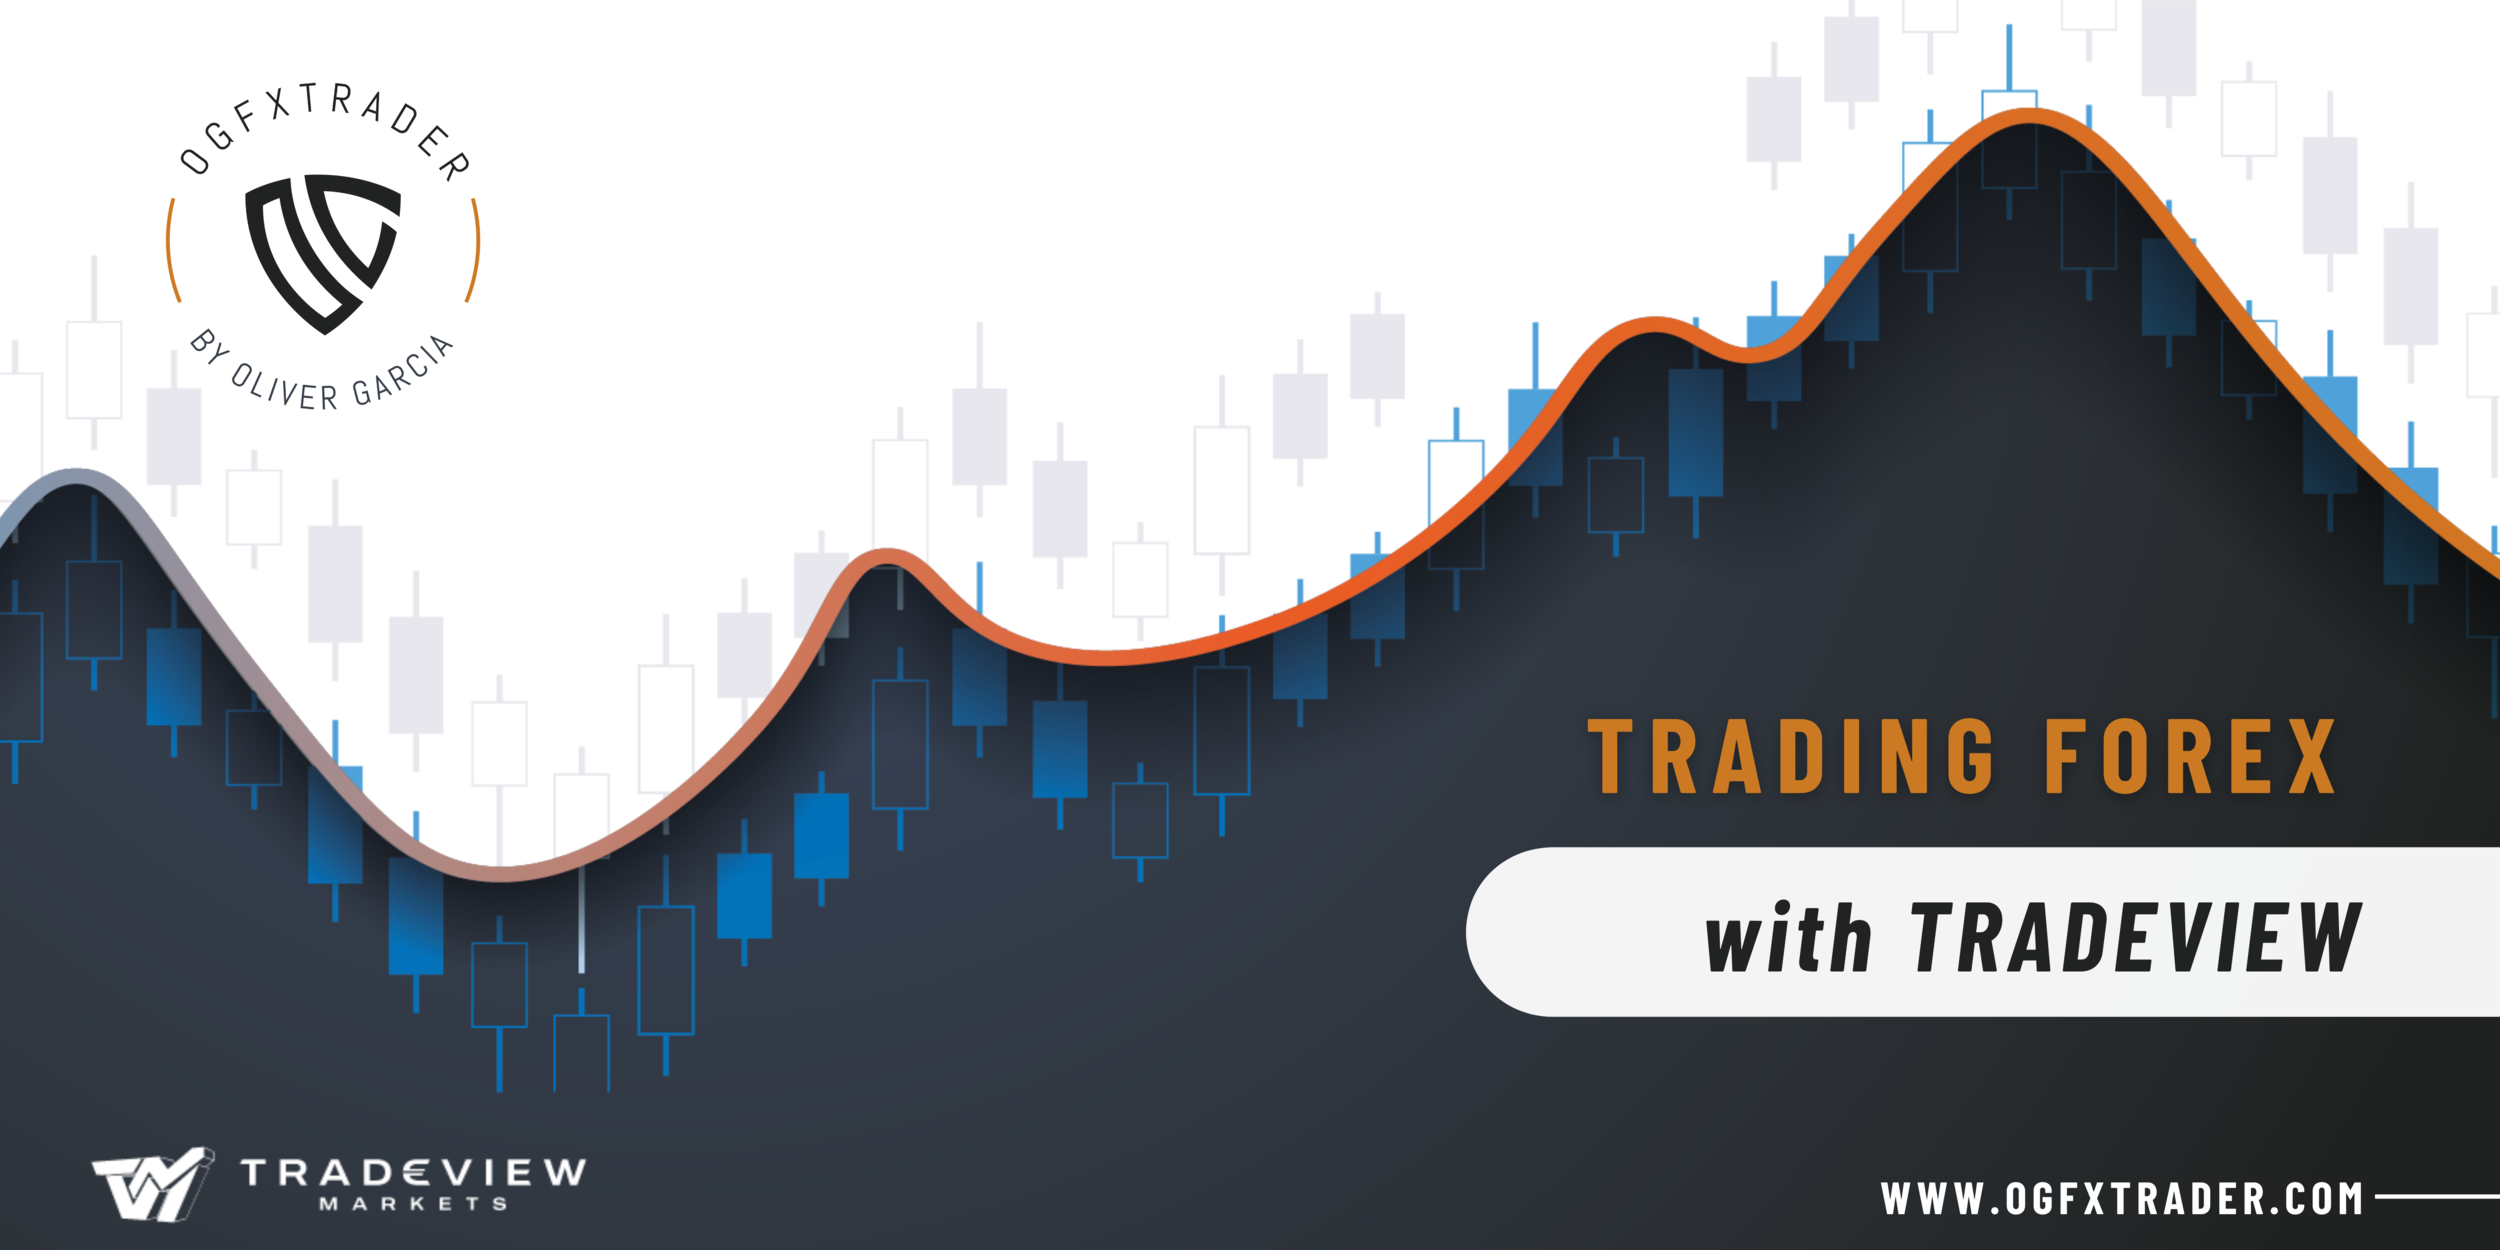 Trading Forex with TRADEVIEW MARKETS — OGFXTRADER